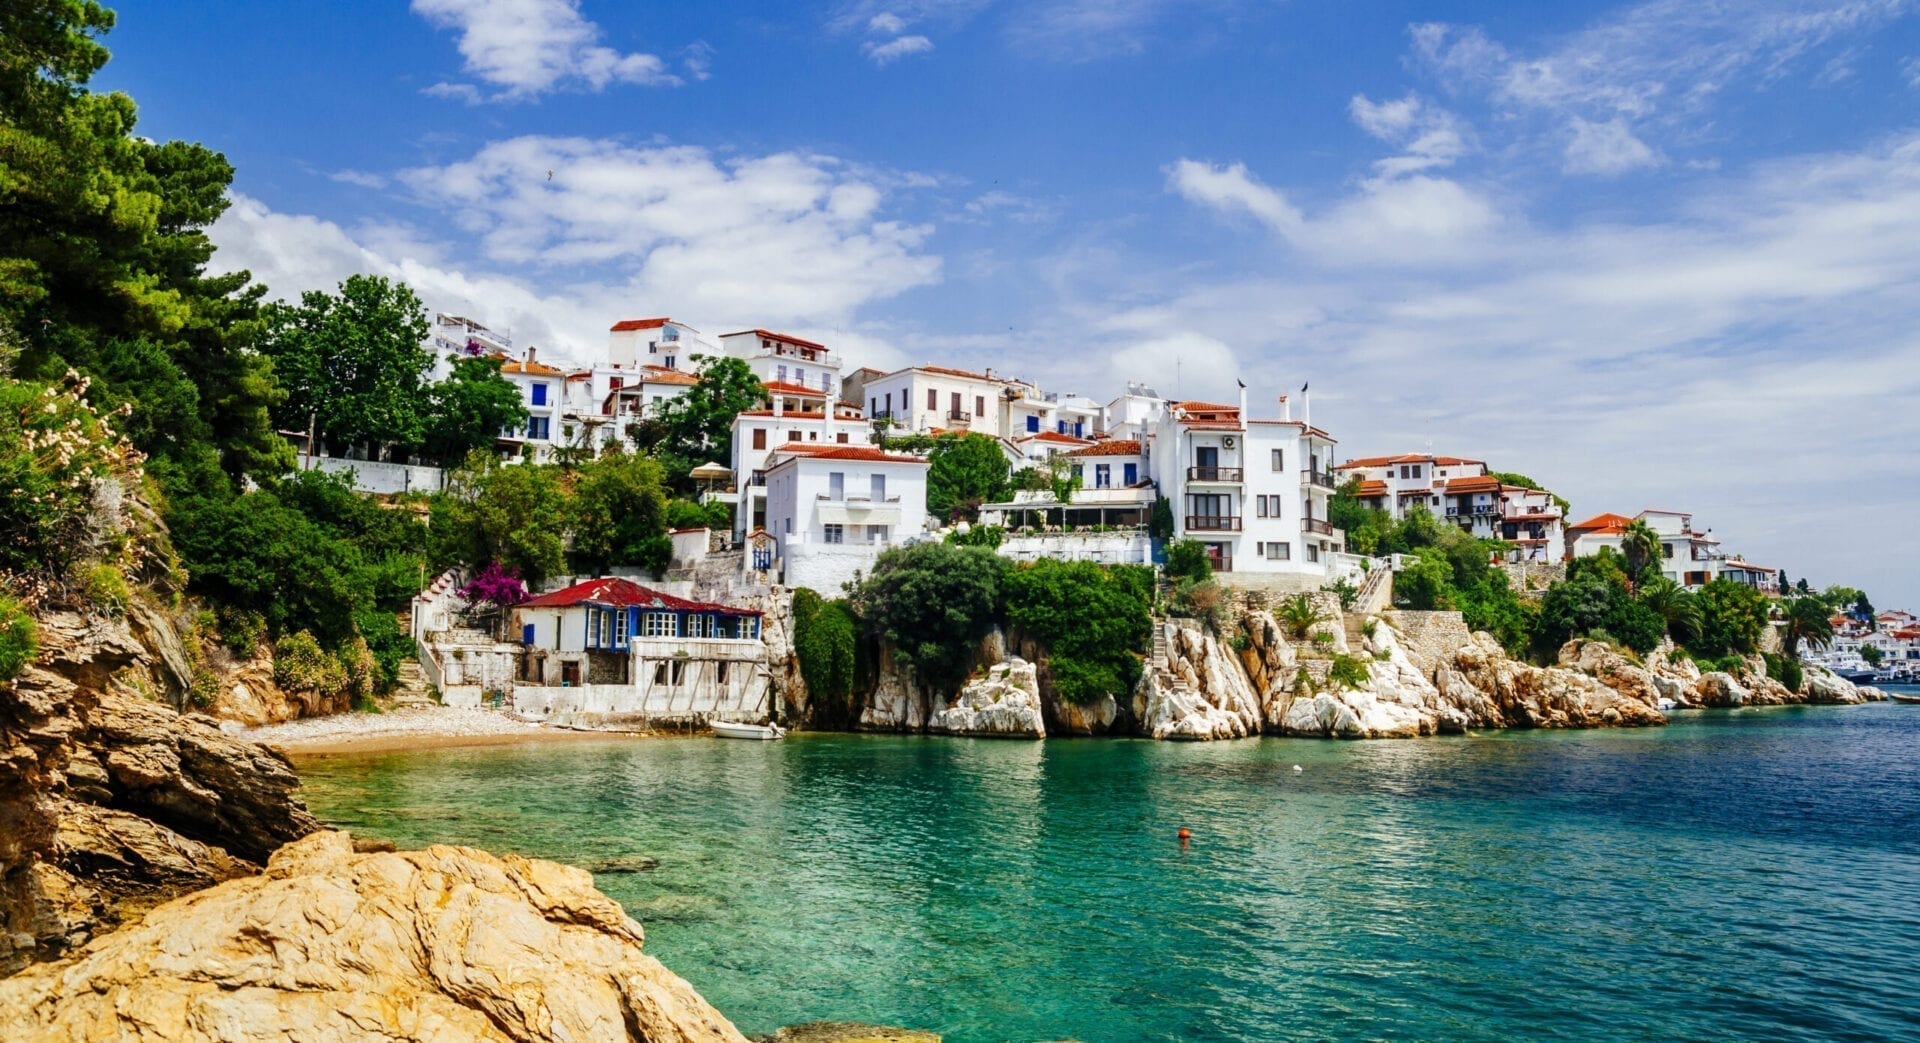 Old town view of Skiathos island, Sporades, Greece. Greek traditional architecture and aegean sea. Popular summer holiday destination scene.